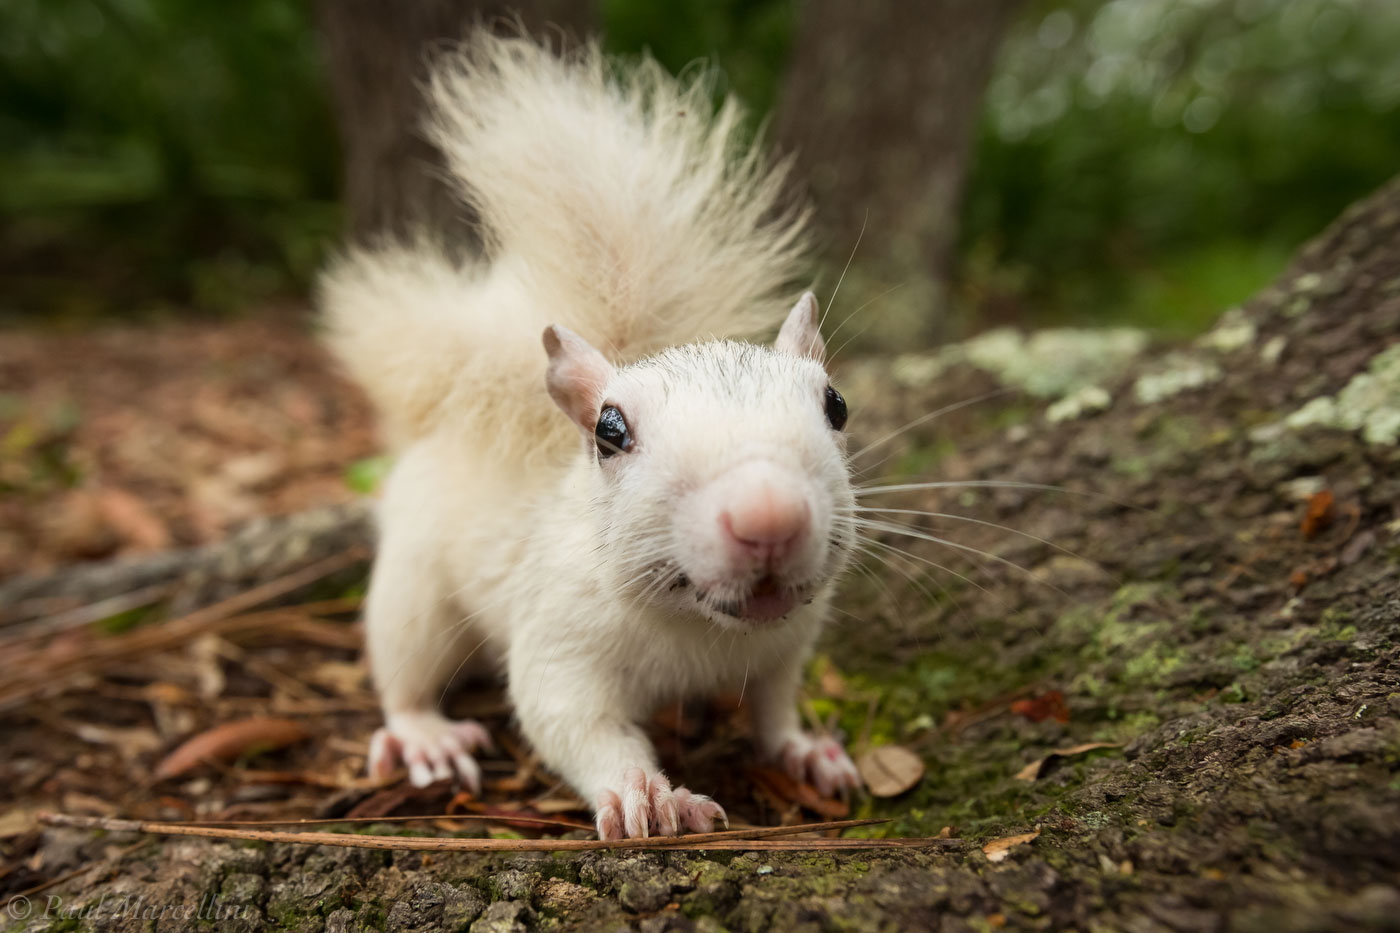 Sciurus carolinensis, white squirrel, Ochlockonee River State Park, Florida, photo